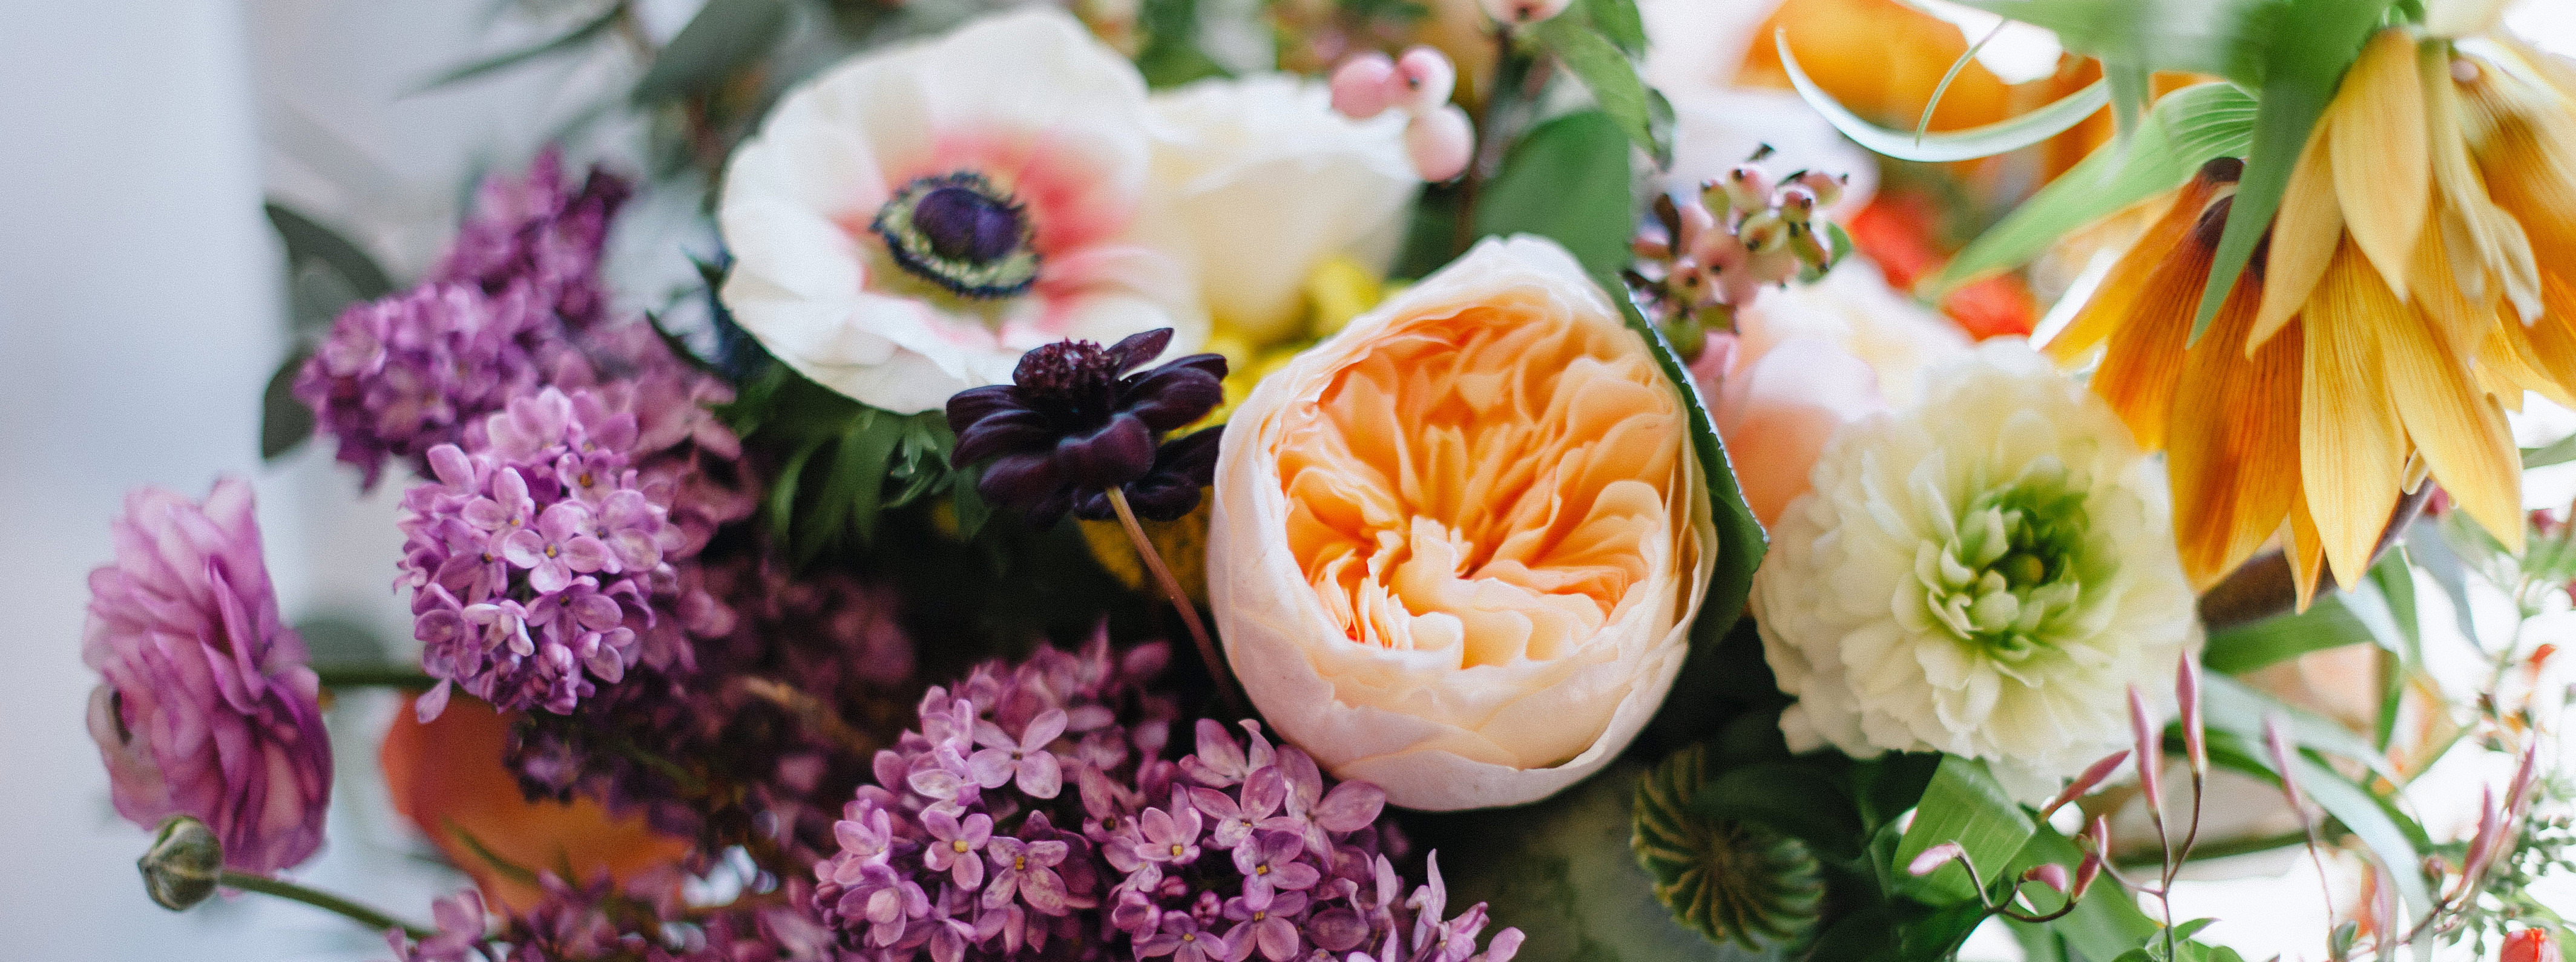 Photography: Alicia Wines Photography | Florals: Meg Catherine Flowers | Jessica Dum Wedding Coordination